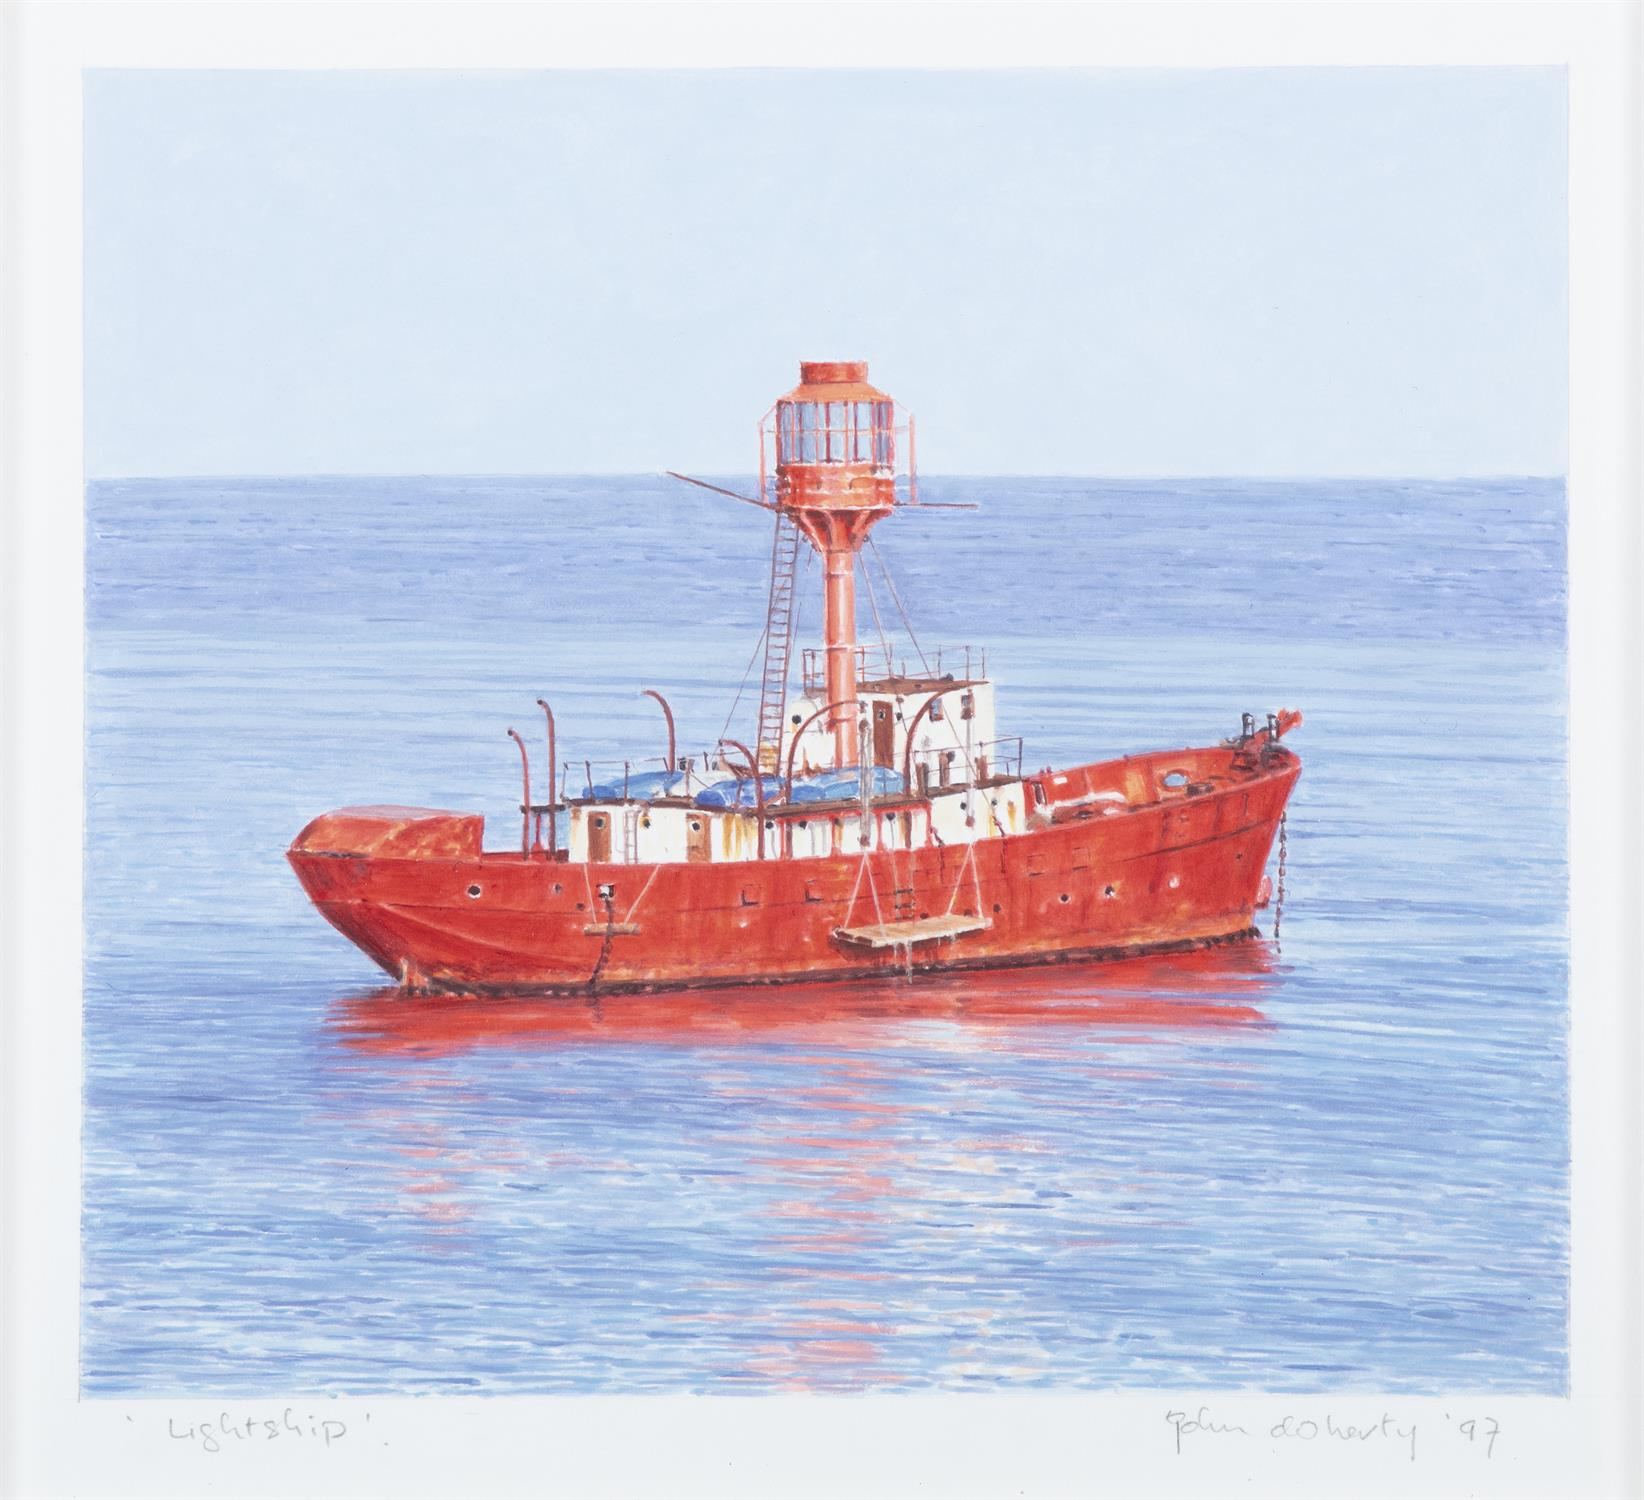 John Doherty (b.1949) Lightship Watercolour, 22.7 x 25.4cm (9 x 10'') Signed, inscribed and